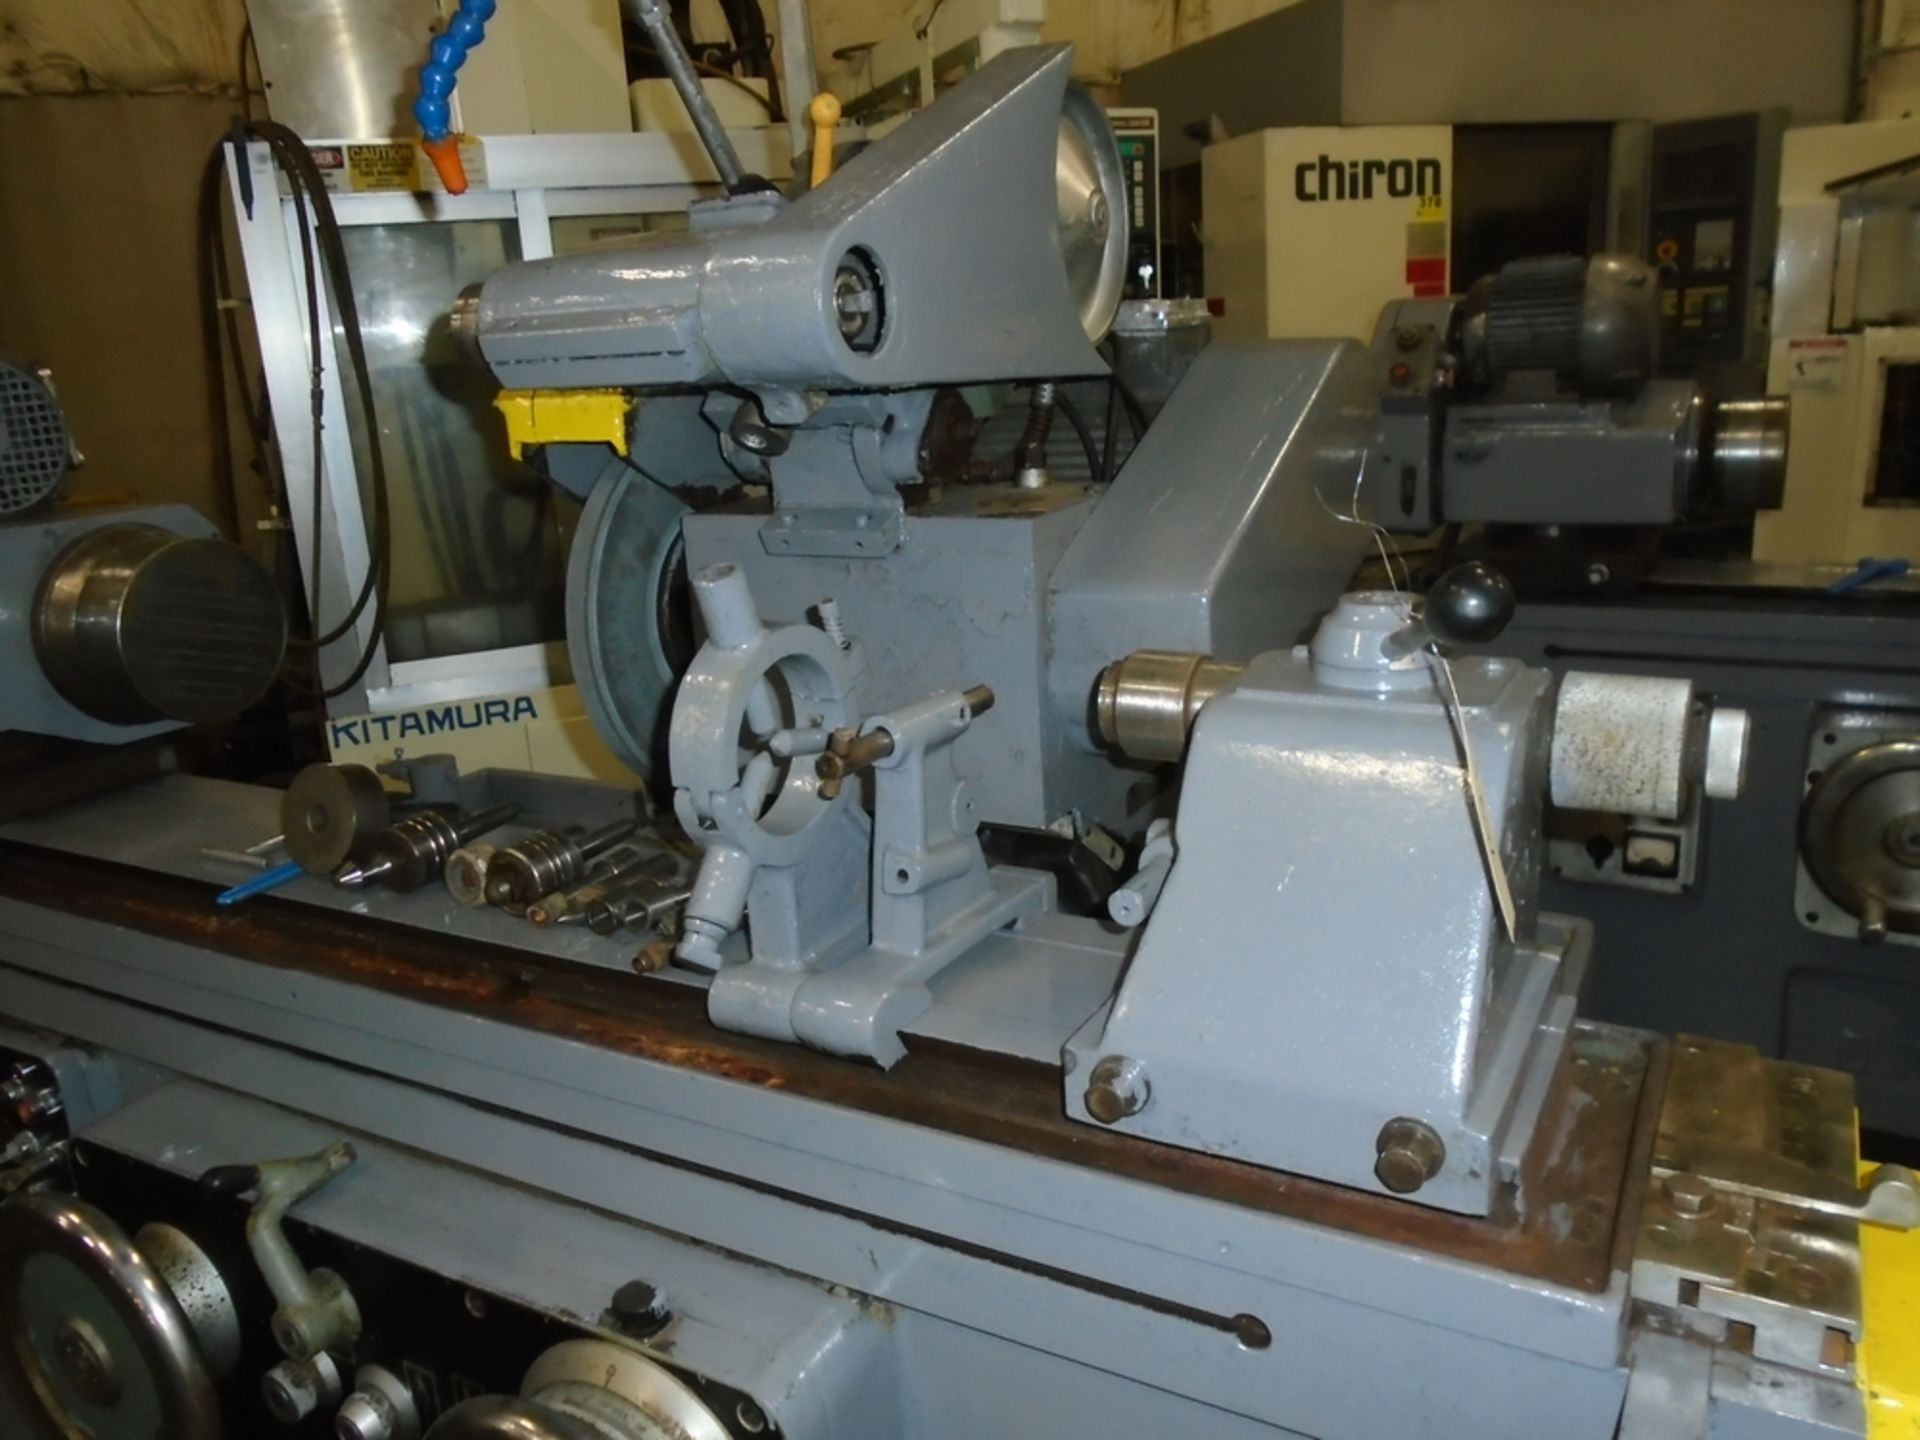 Lot 96A - Grisseti RTA-1000 OD/ID Universal Cylindrical Grinder SN:1215 Model: RTA-1000 SN:1215 Capacity: